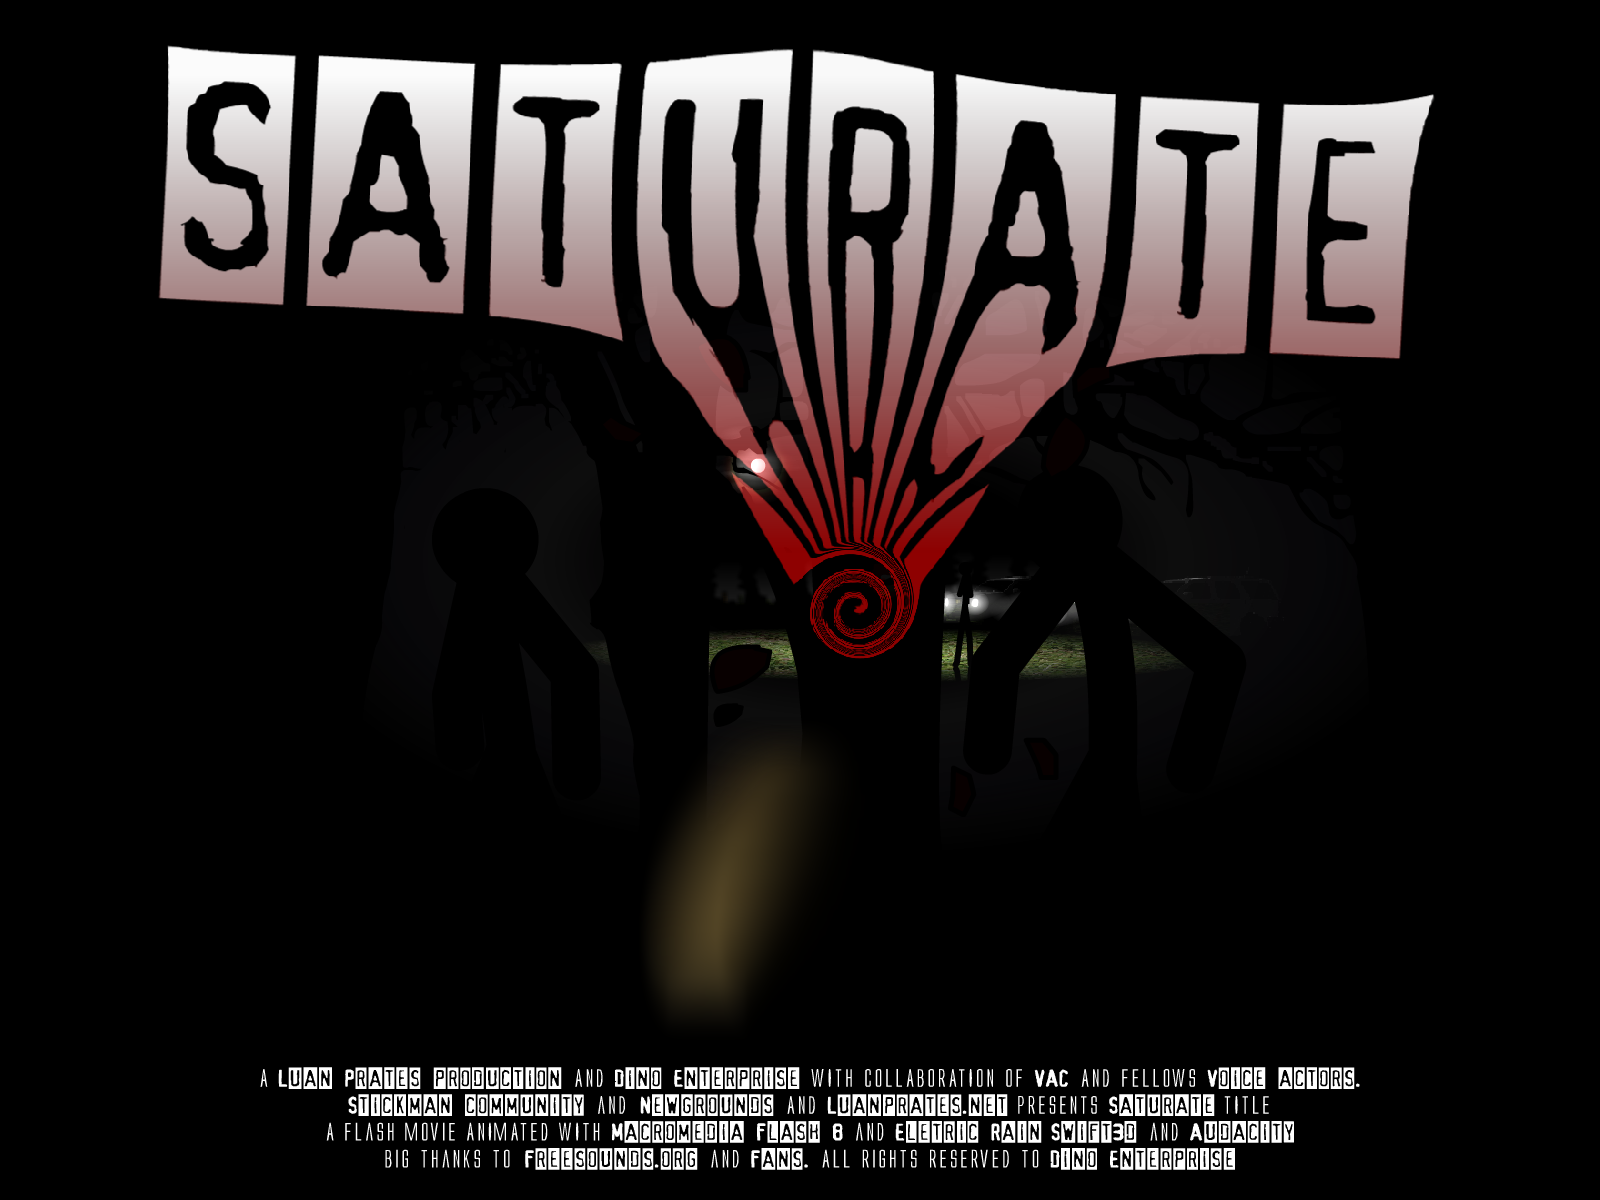 Saturate Poster